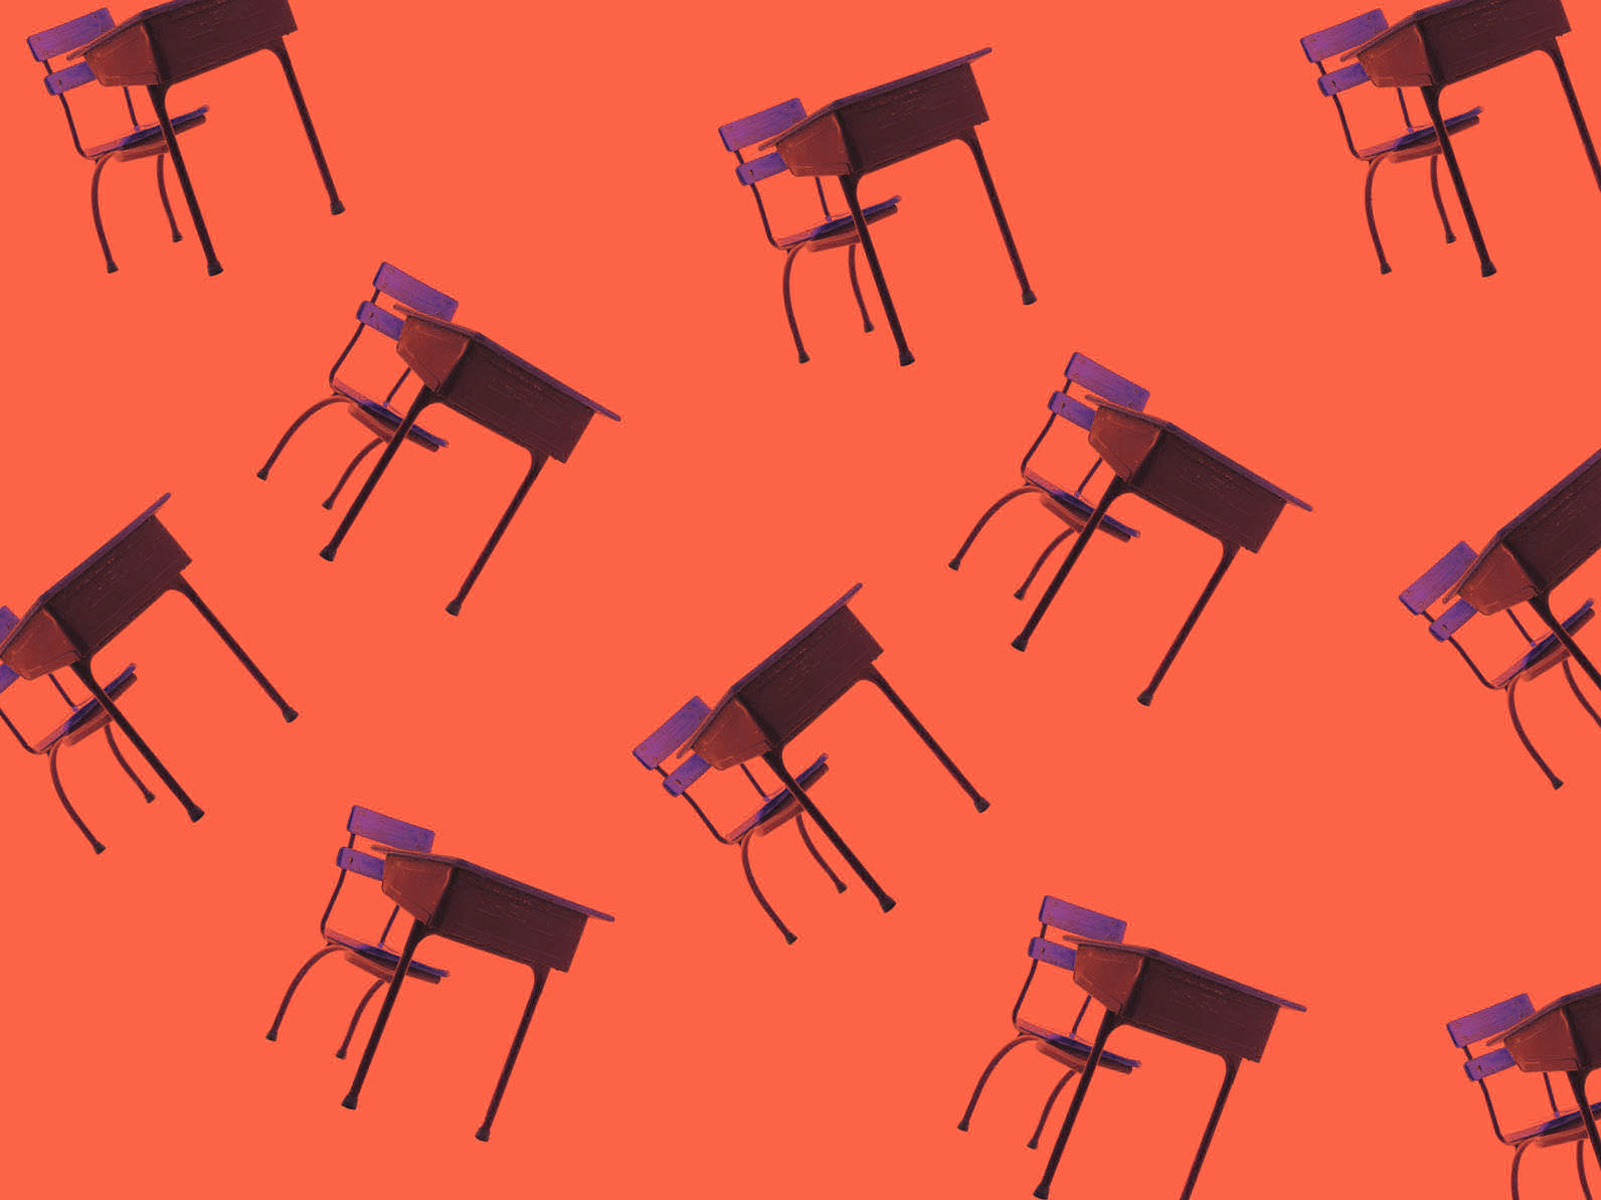 Illustration of desks against an orange background